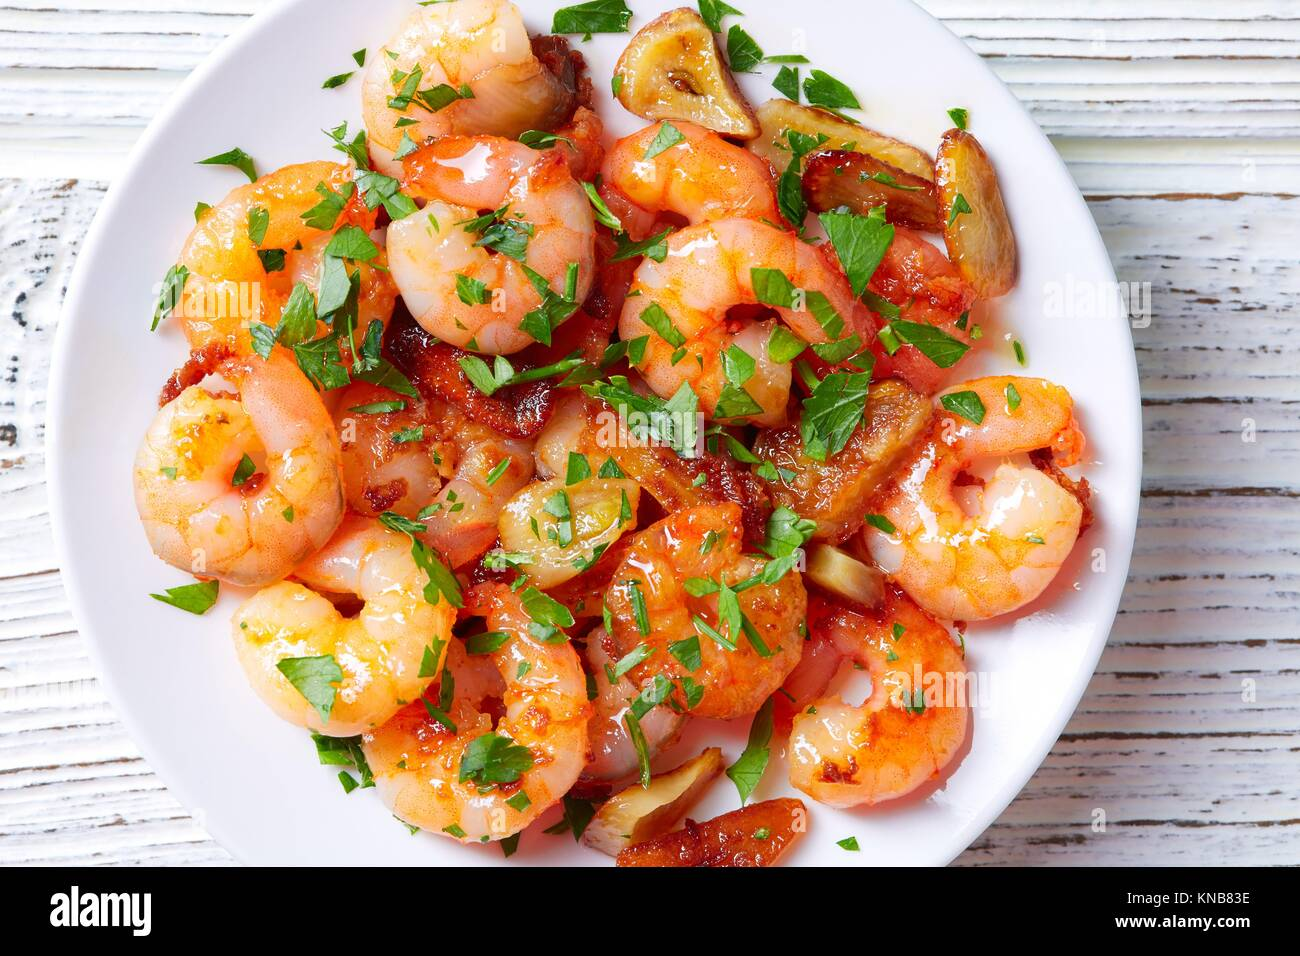 Garlic shrimp pinchos tapas from Spain gambas al ajillo. - Stock Image